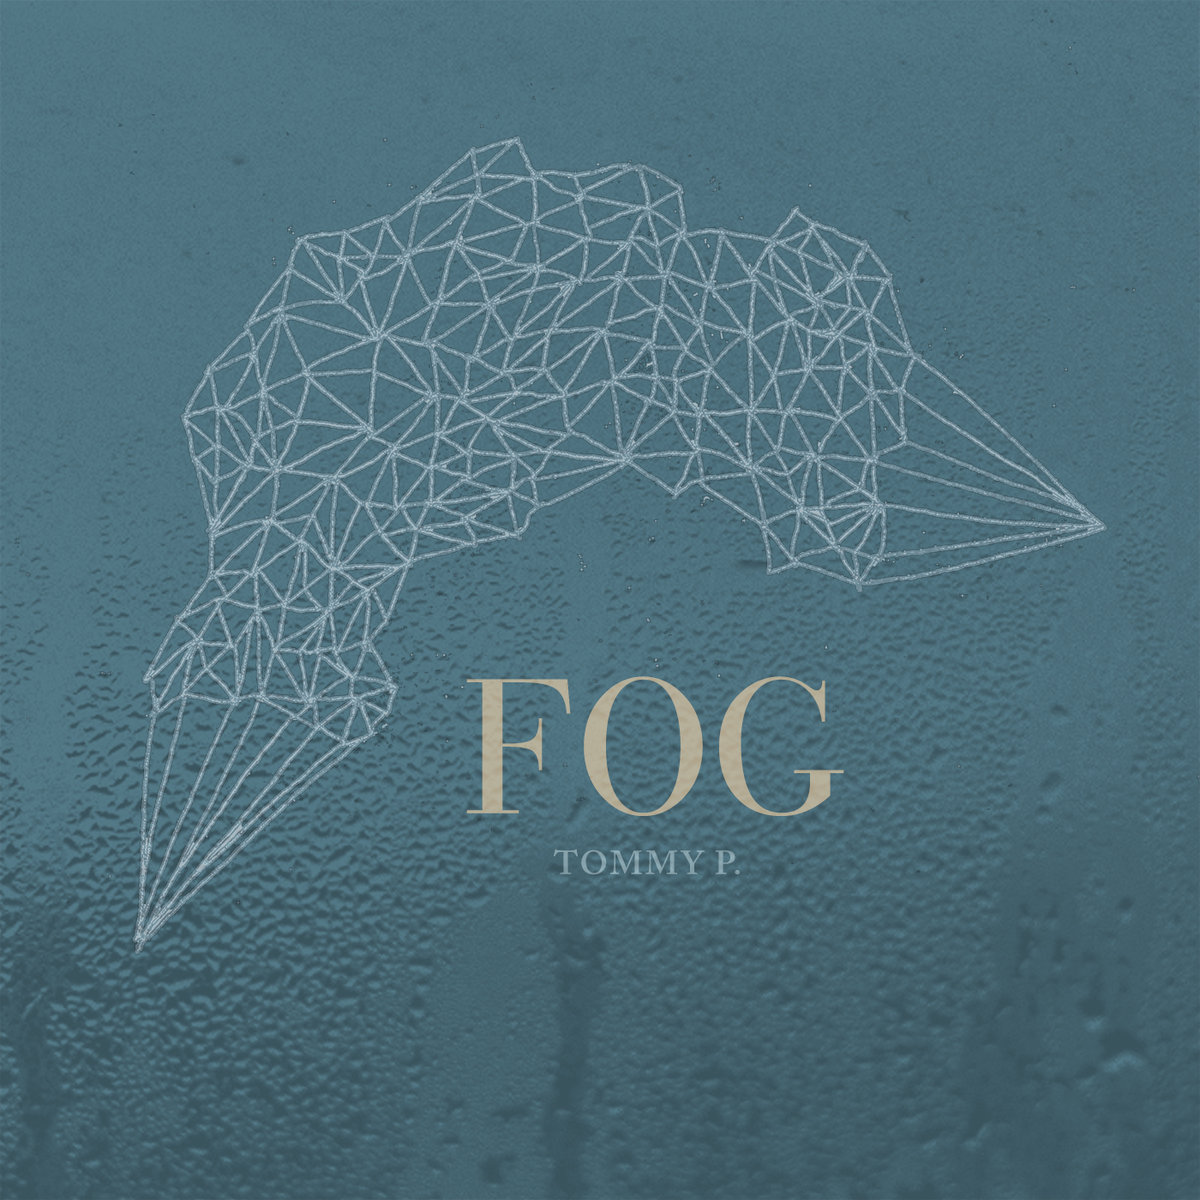 Tommy P. - Search For You @ 'Fog' album (11th ave records, 11thaverecords 11th avenue)